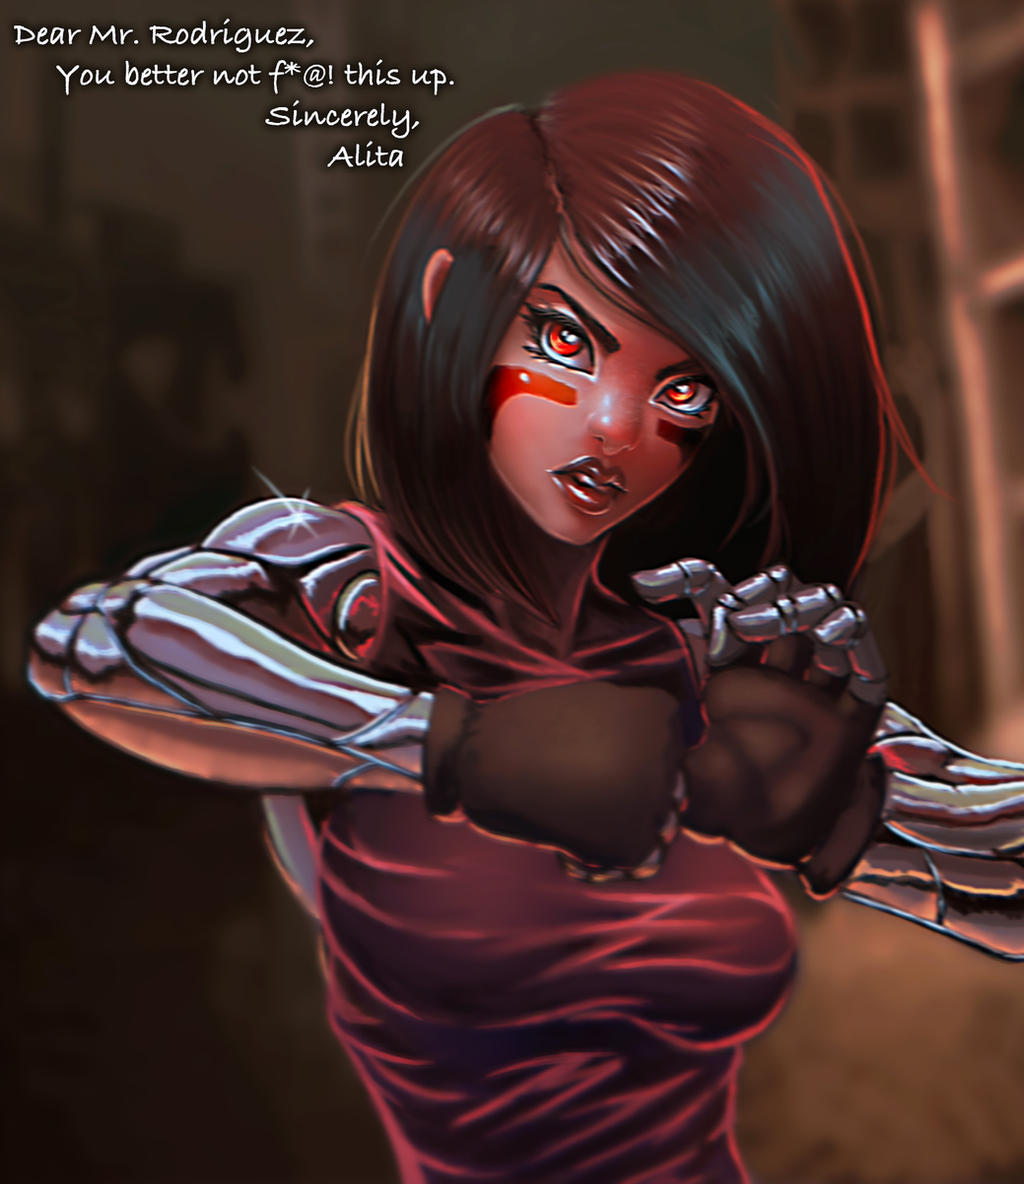 Battle Angel Alita fan art by BlackHawk45LC